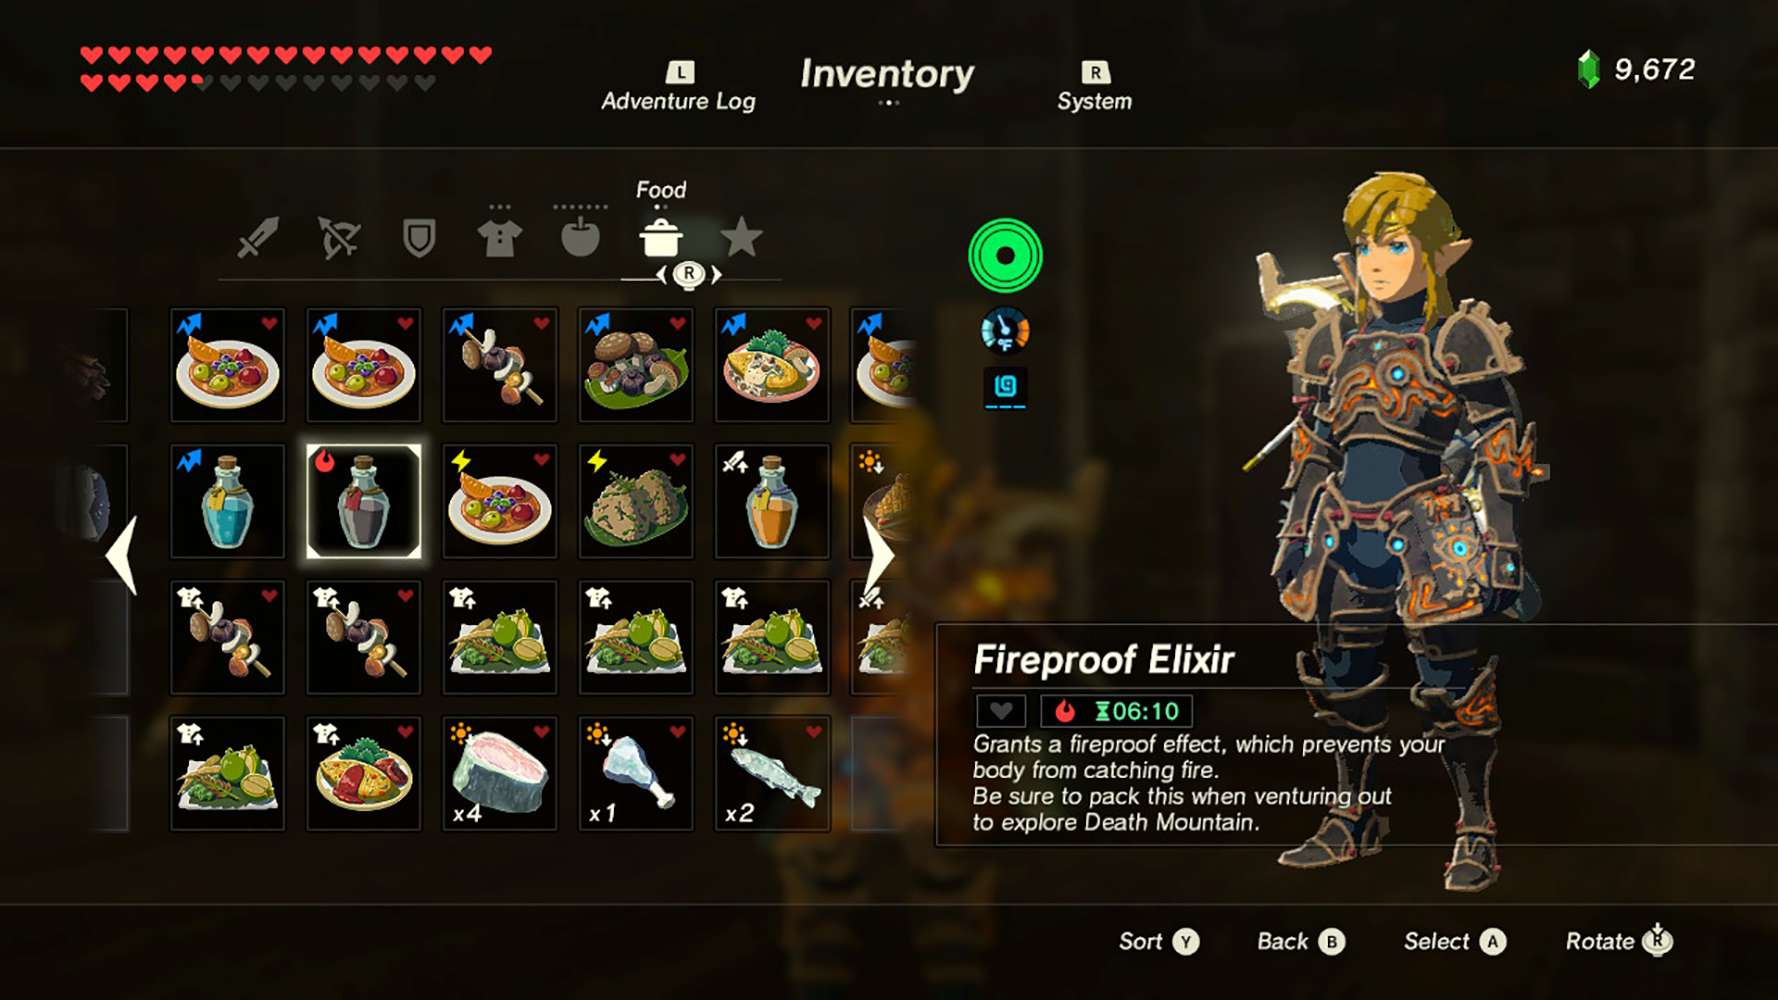 A screenshot of the inventory featuring an elixir in Legend of Zelda: Breath of the Wild